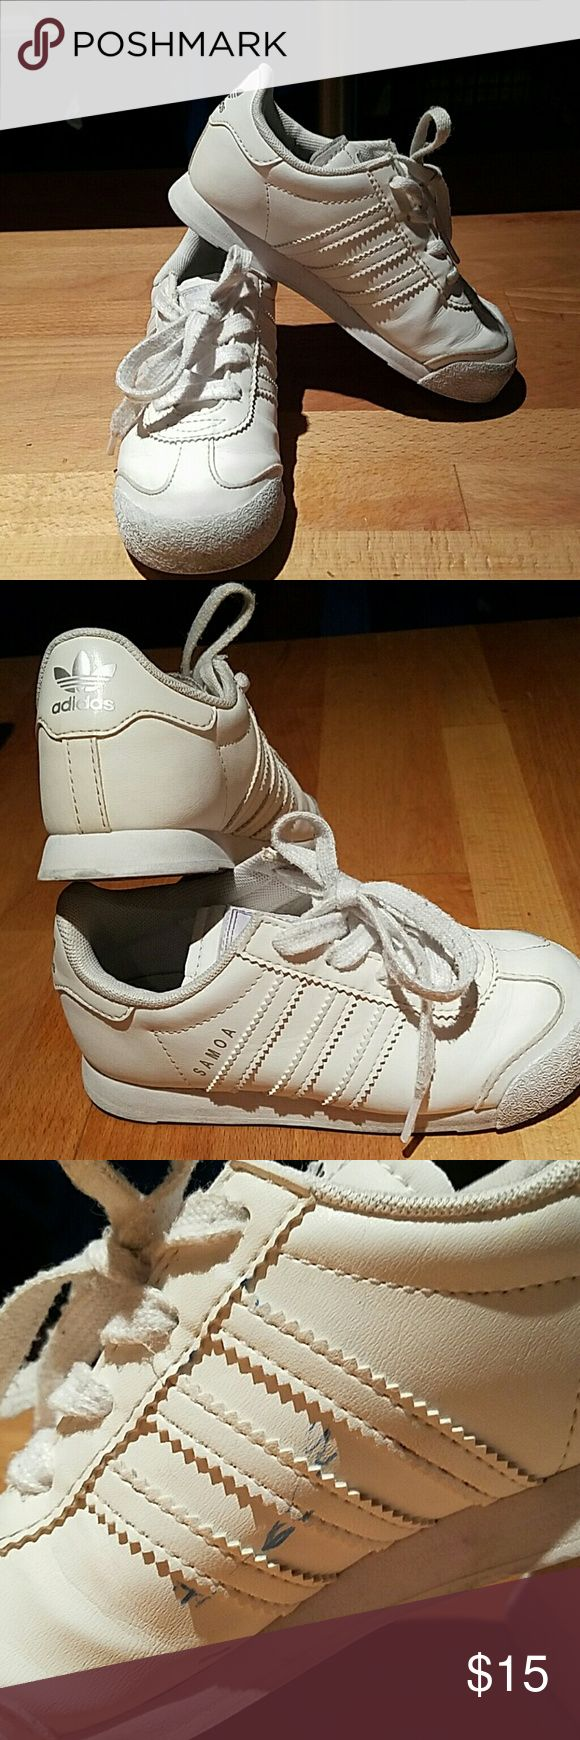 Adidas Samoa Size 10 kids unisex Adidas samoas. Silver adidas logos. Preloved condition but still have miles left to walk in! Please note the pen marks on the inside. Adidas Shoes Sneakers